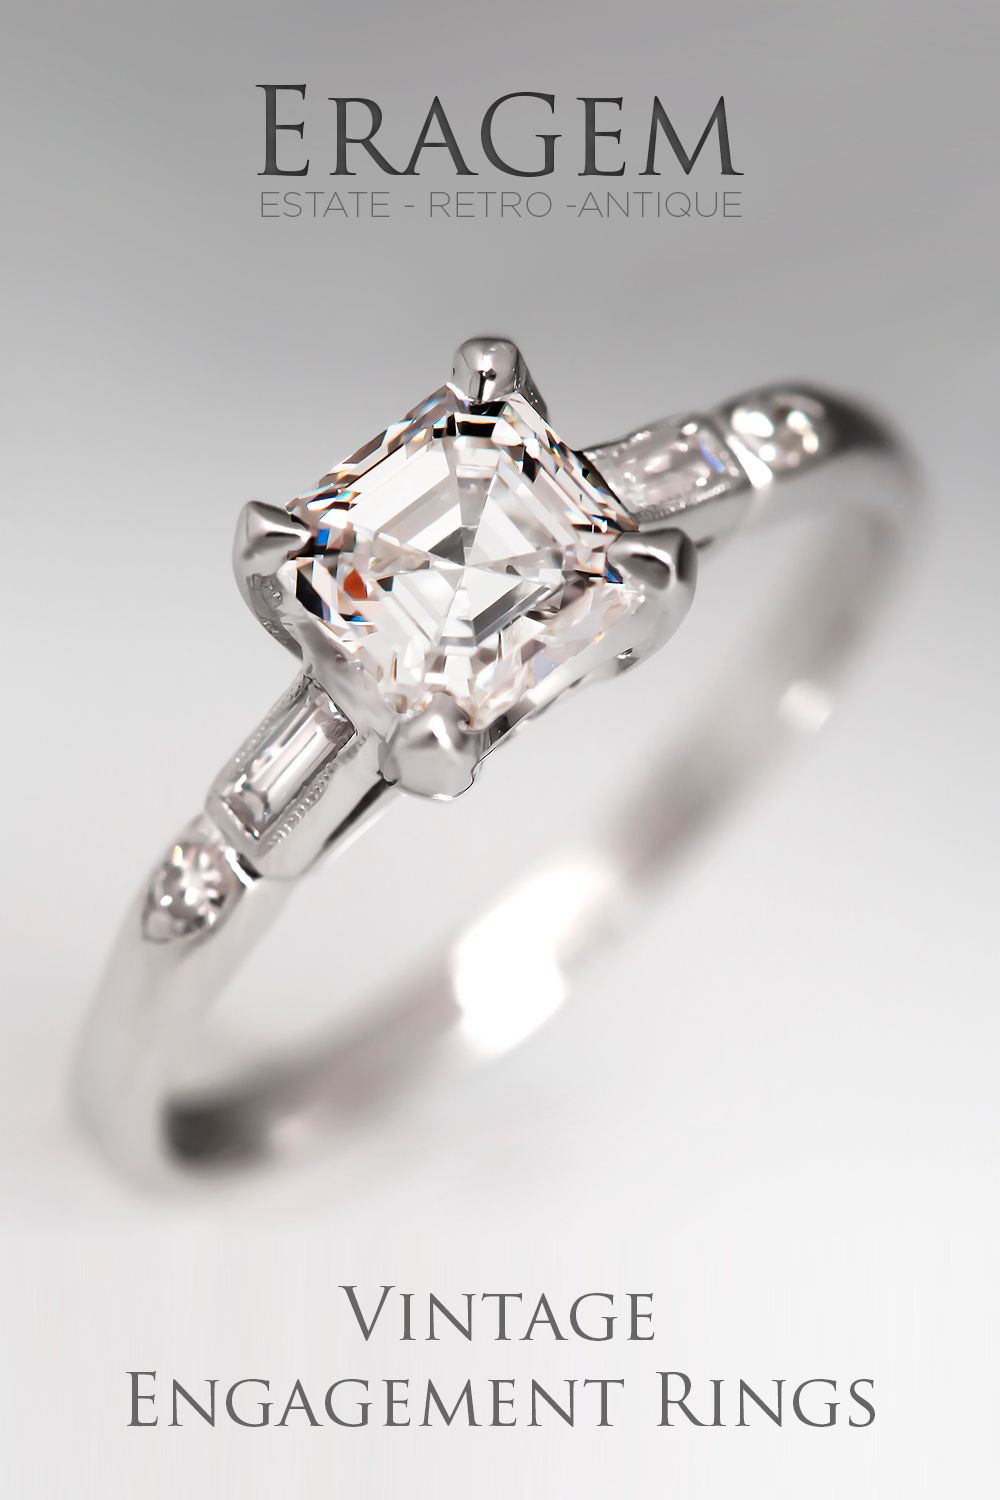 eragem specializes in finding one of a kind authentic vintage engagement rings for - One Of A Kind Wedding Rings